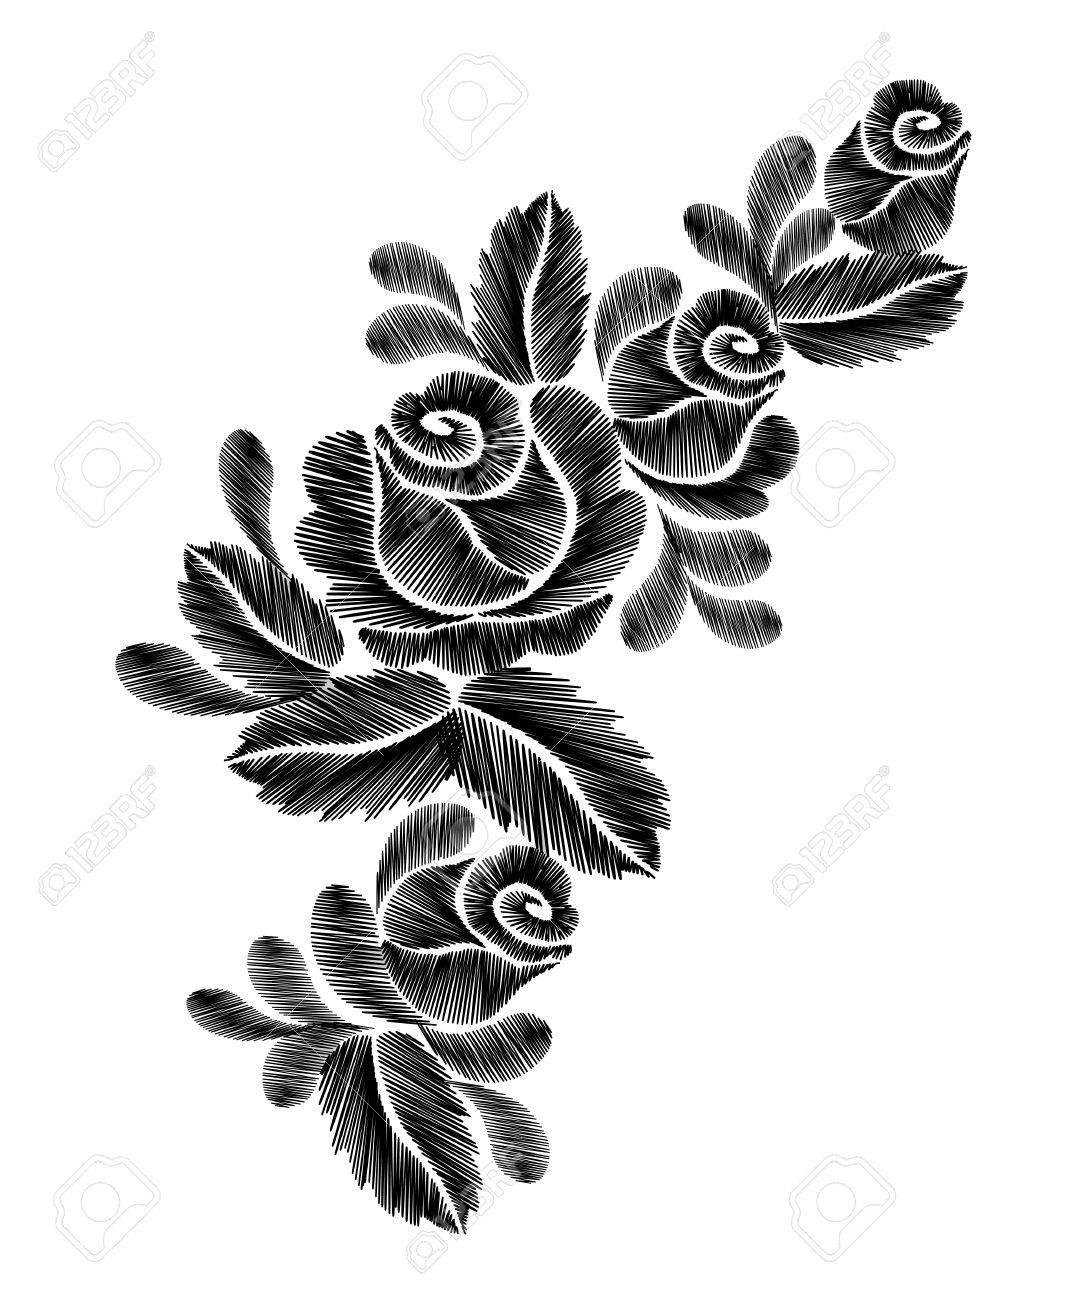 Black Roses Embroidery On White Background Ethnic Flowers Neck